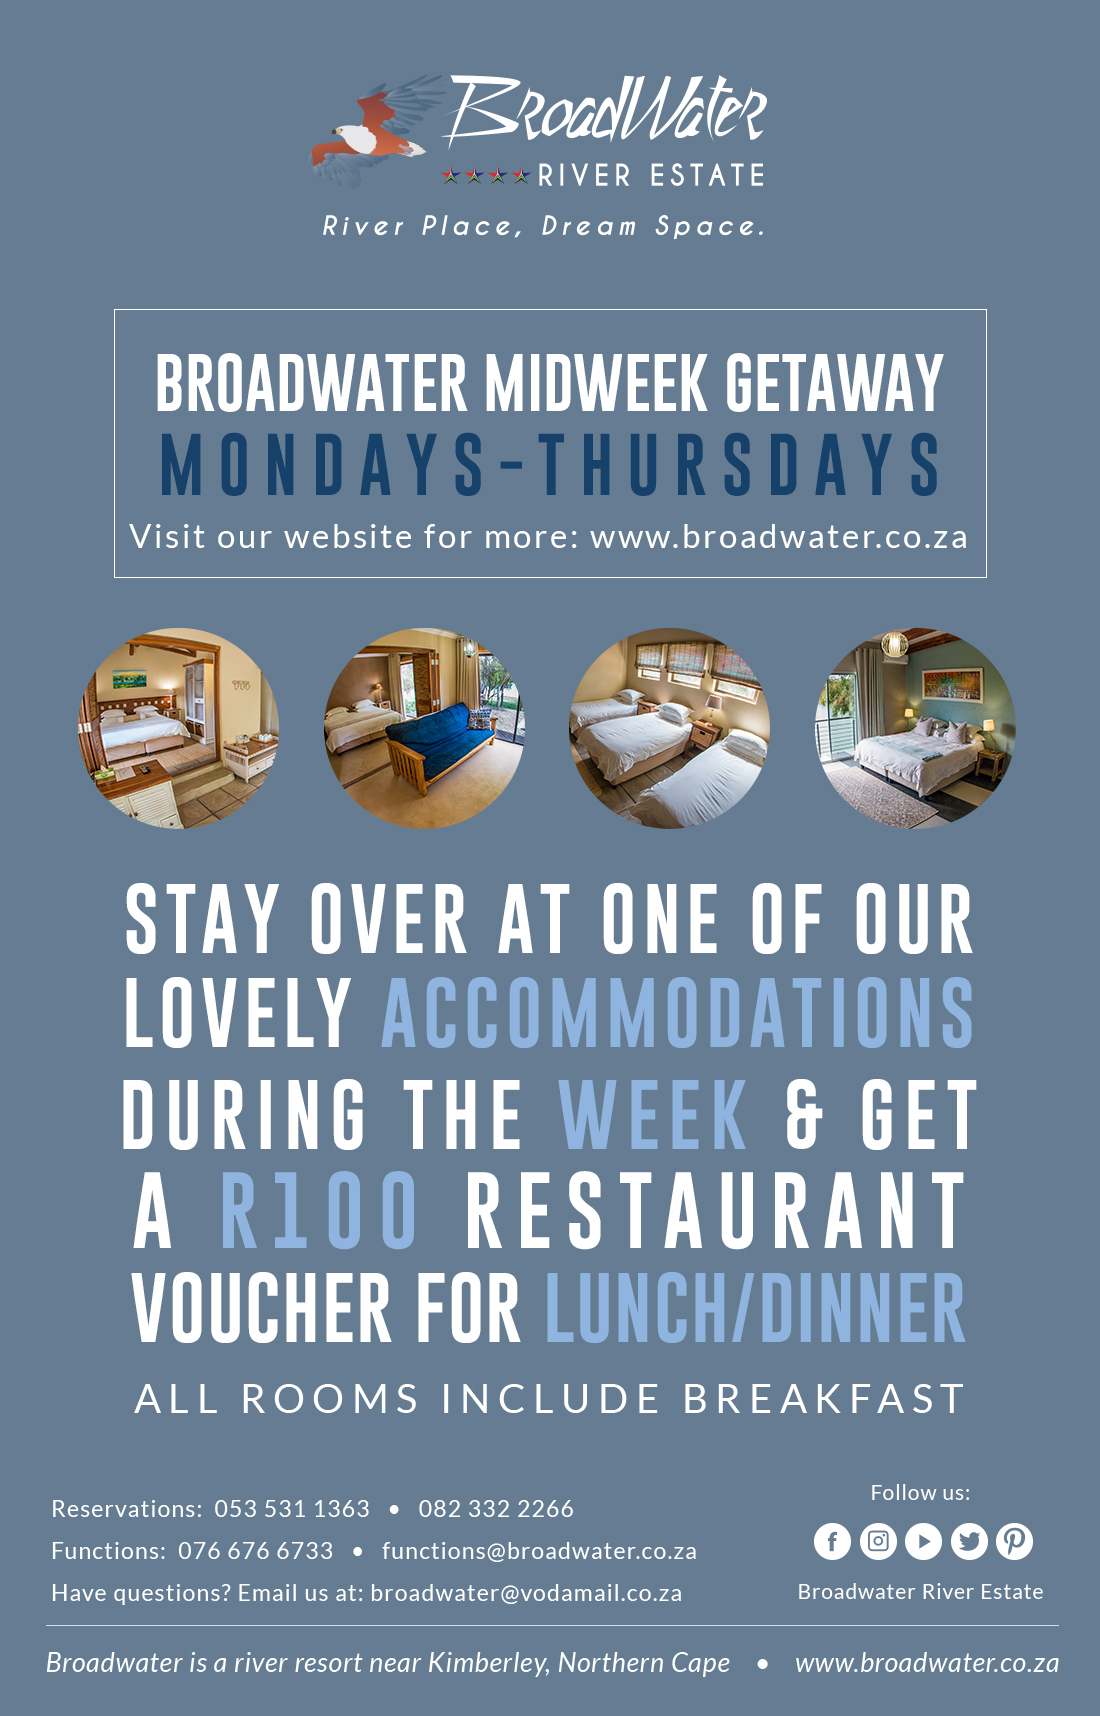 broadwater midweek getaway, stay over at one of our lovely accommodations during the week and get R100 off at our restaurant